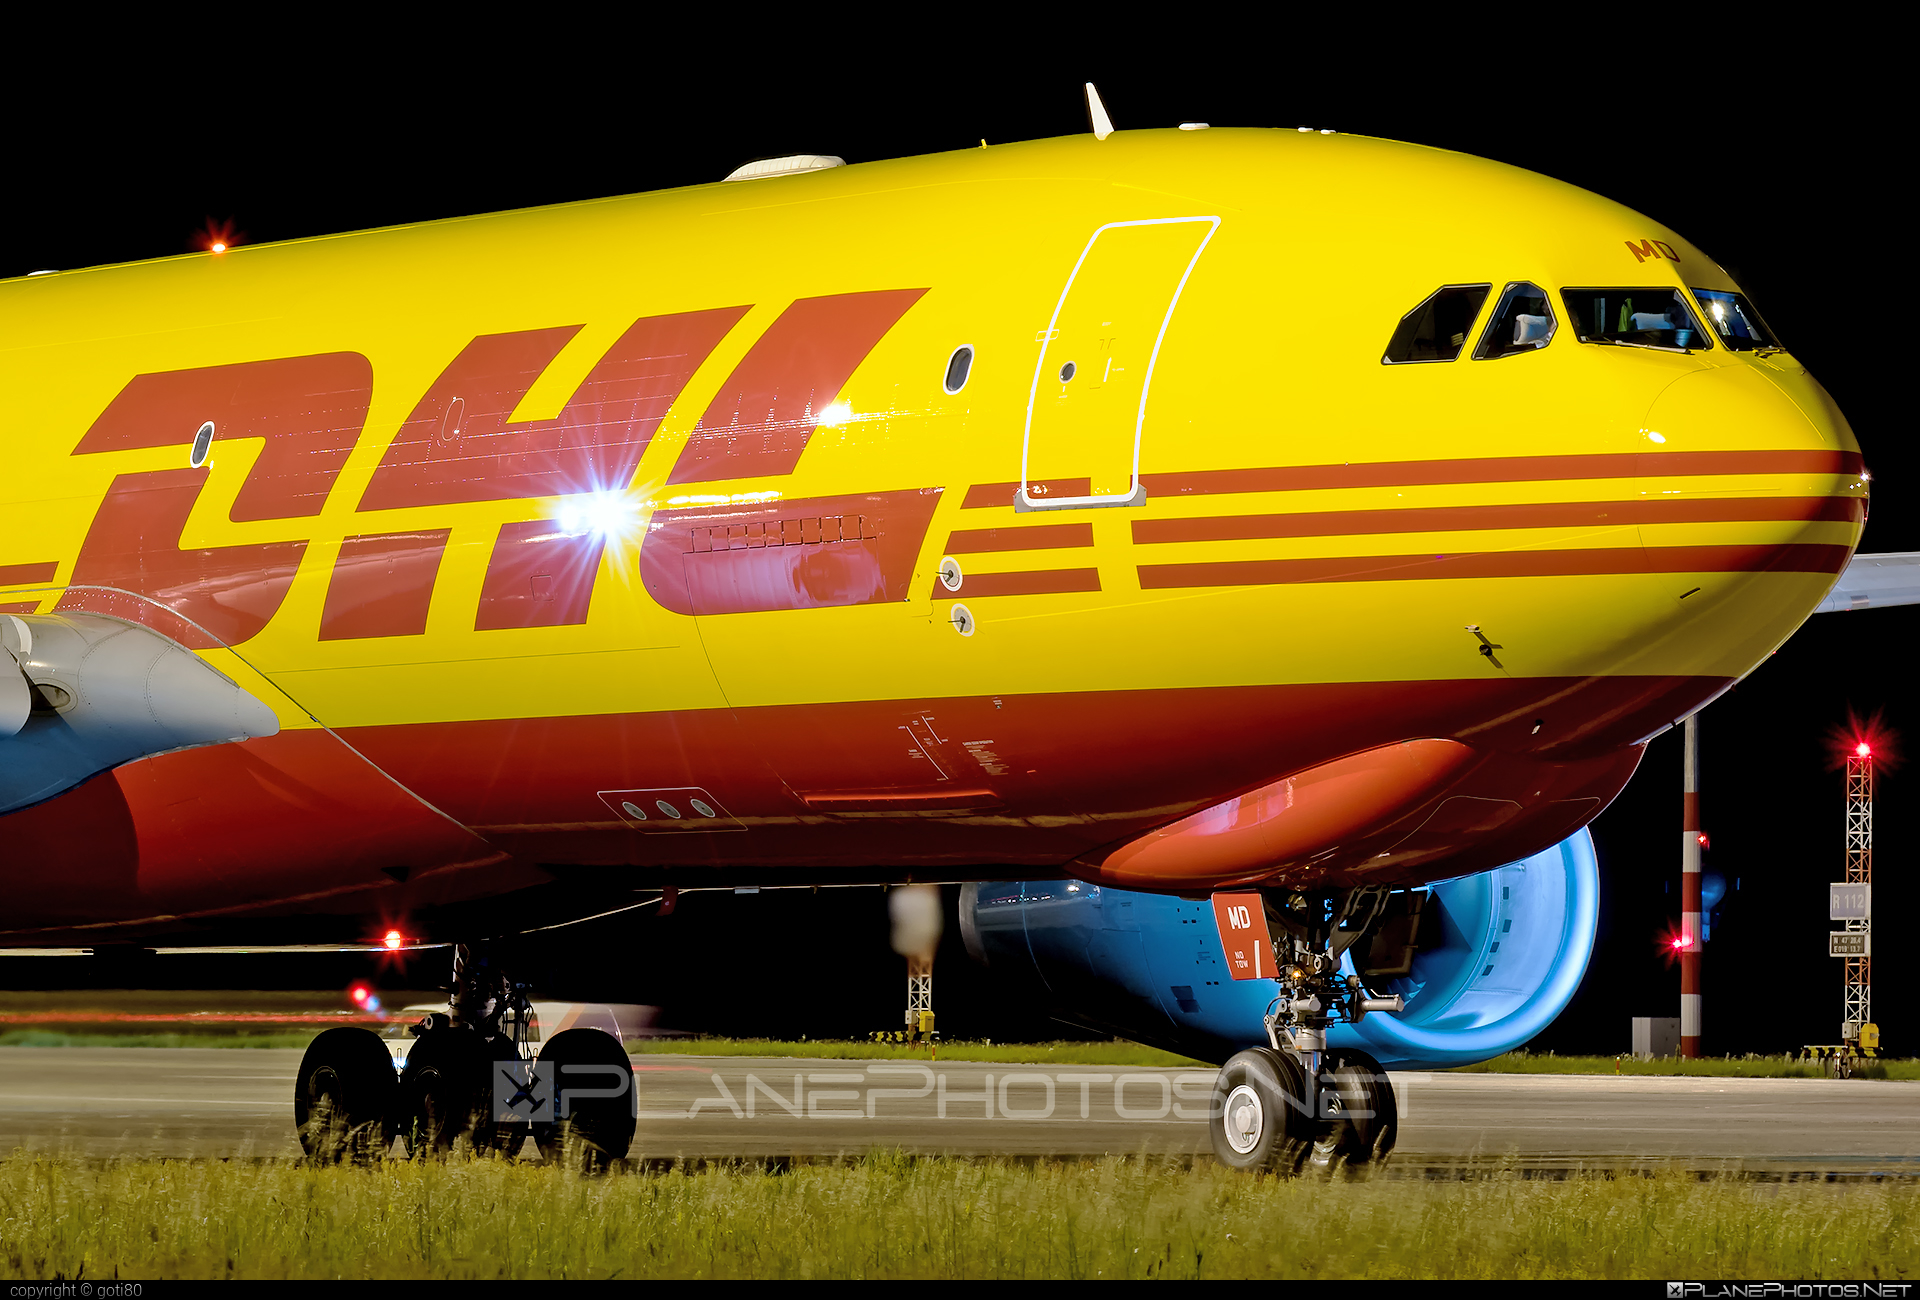 Airbus A330-243F - D-ALMD operated by DHL (European Air Transport) #a330 #a330f #a330family #airbus #airbus330